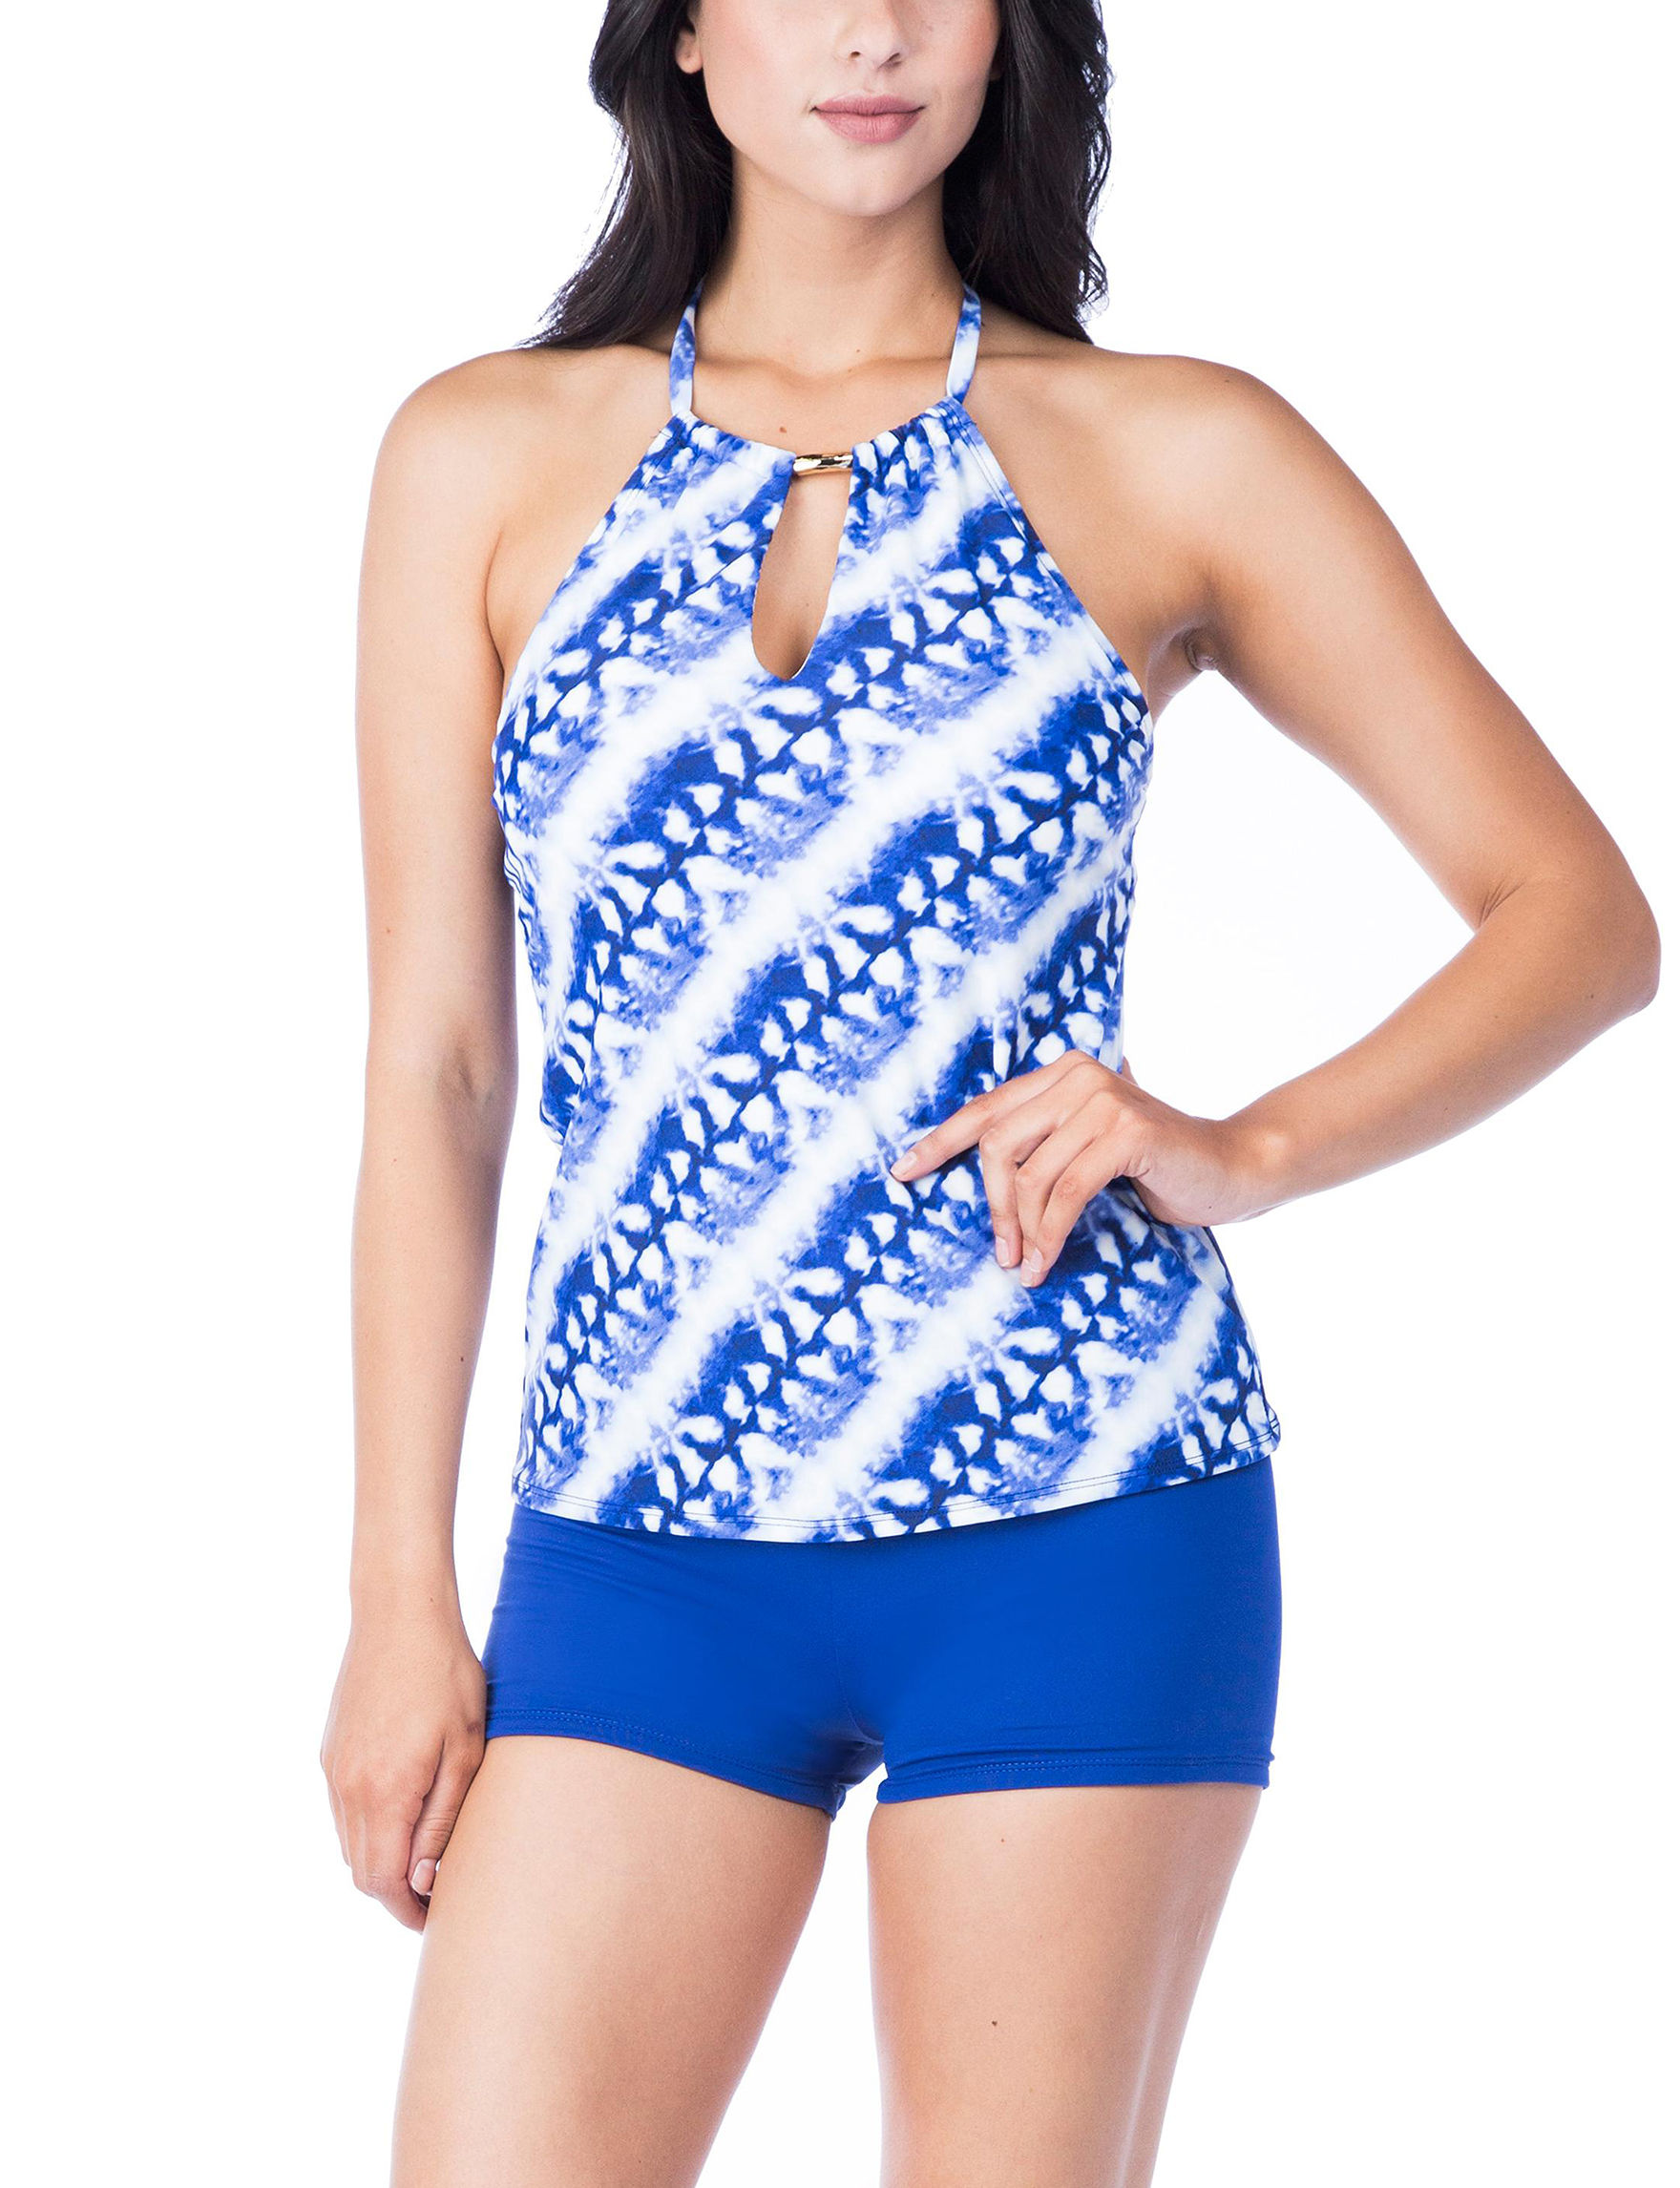 Chaps White / Blue Swimsuit Tops High Neck